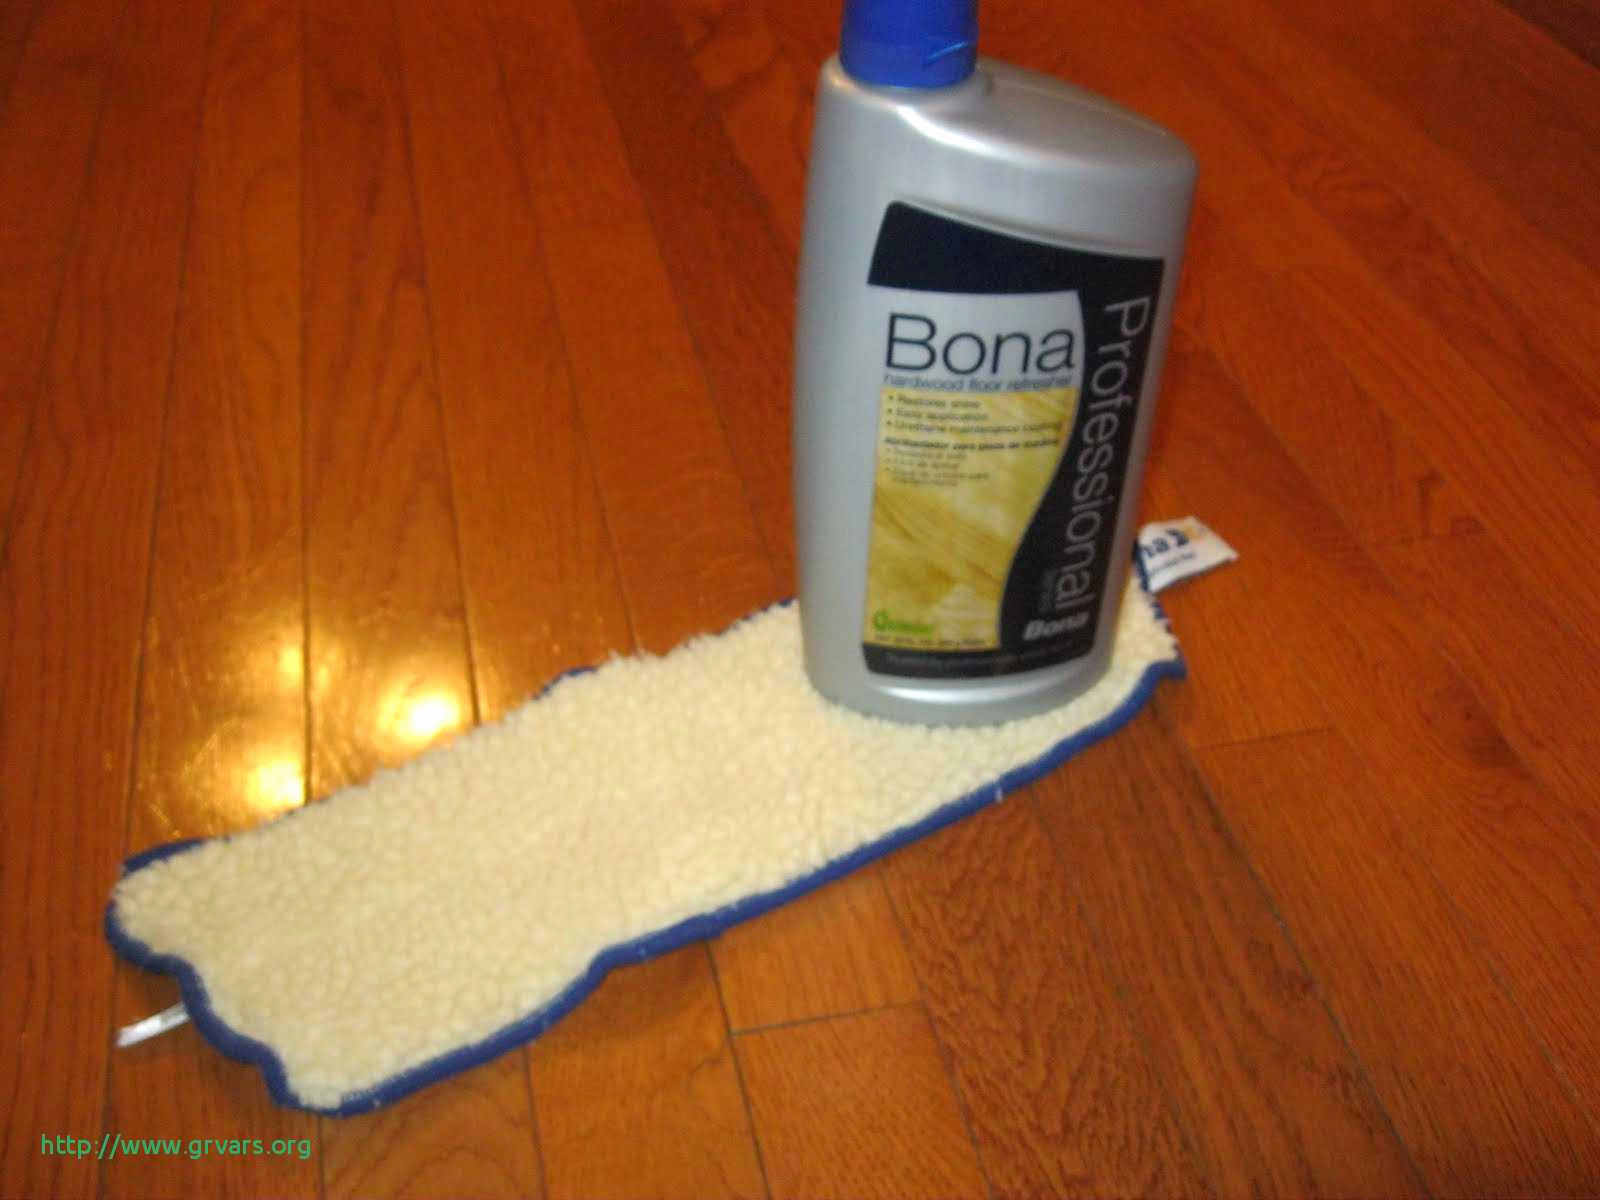 Bona Hardwood Floor Cleaner Home Depot Of 46 Elegant the Best Of Bona Hardwood Floor Mop Laminate Mobel Regarding 46 Elegant the Best Of Bona Hardwood Floor Mop Laminate